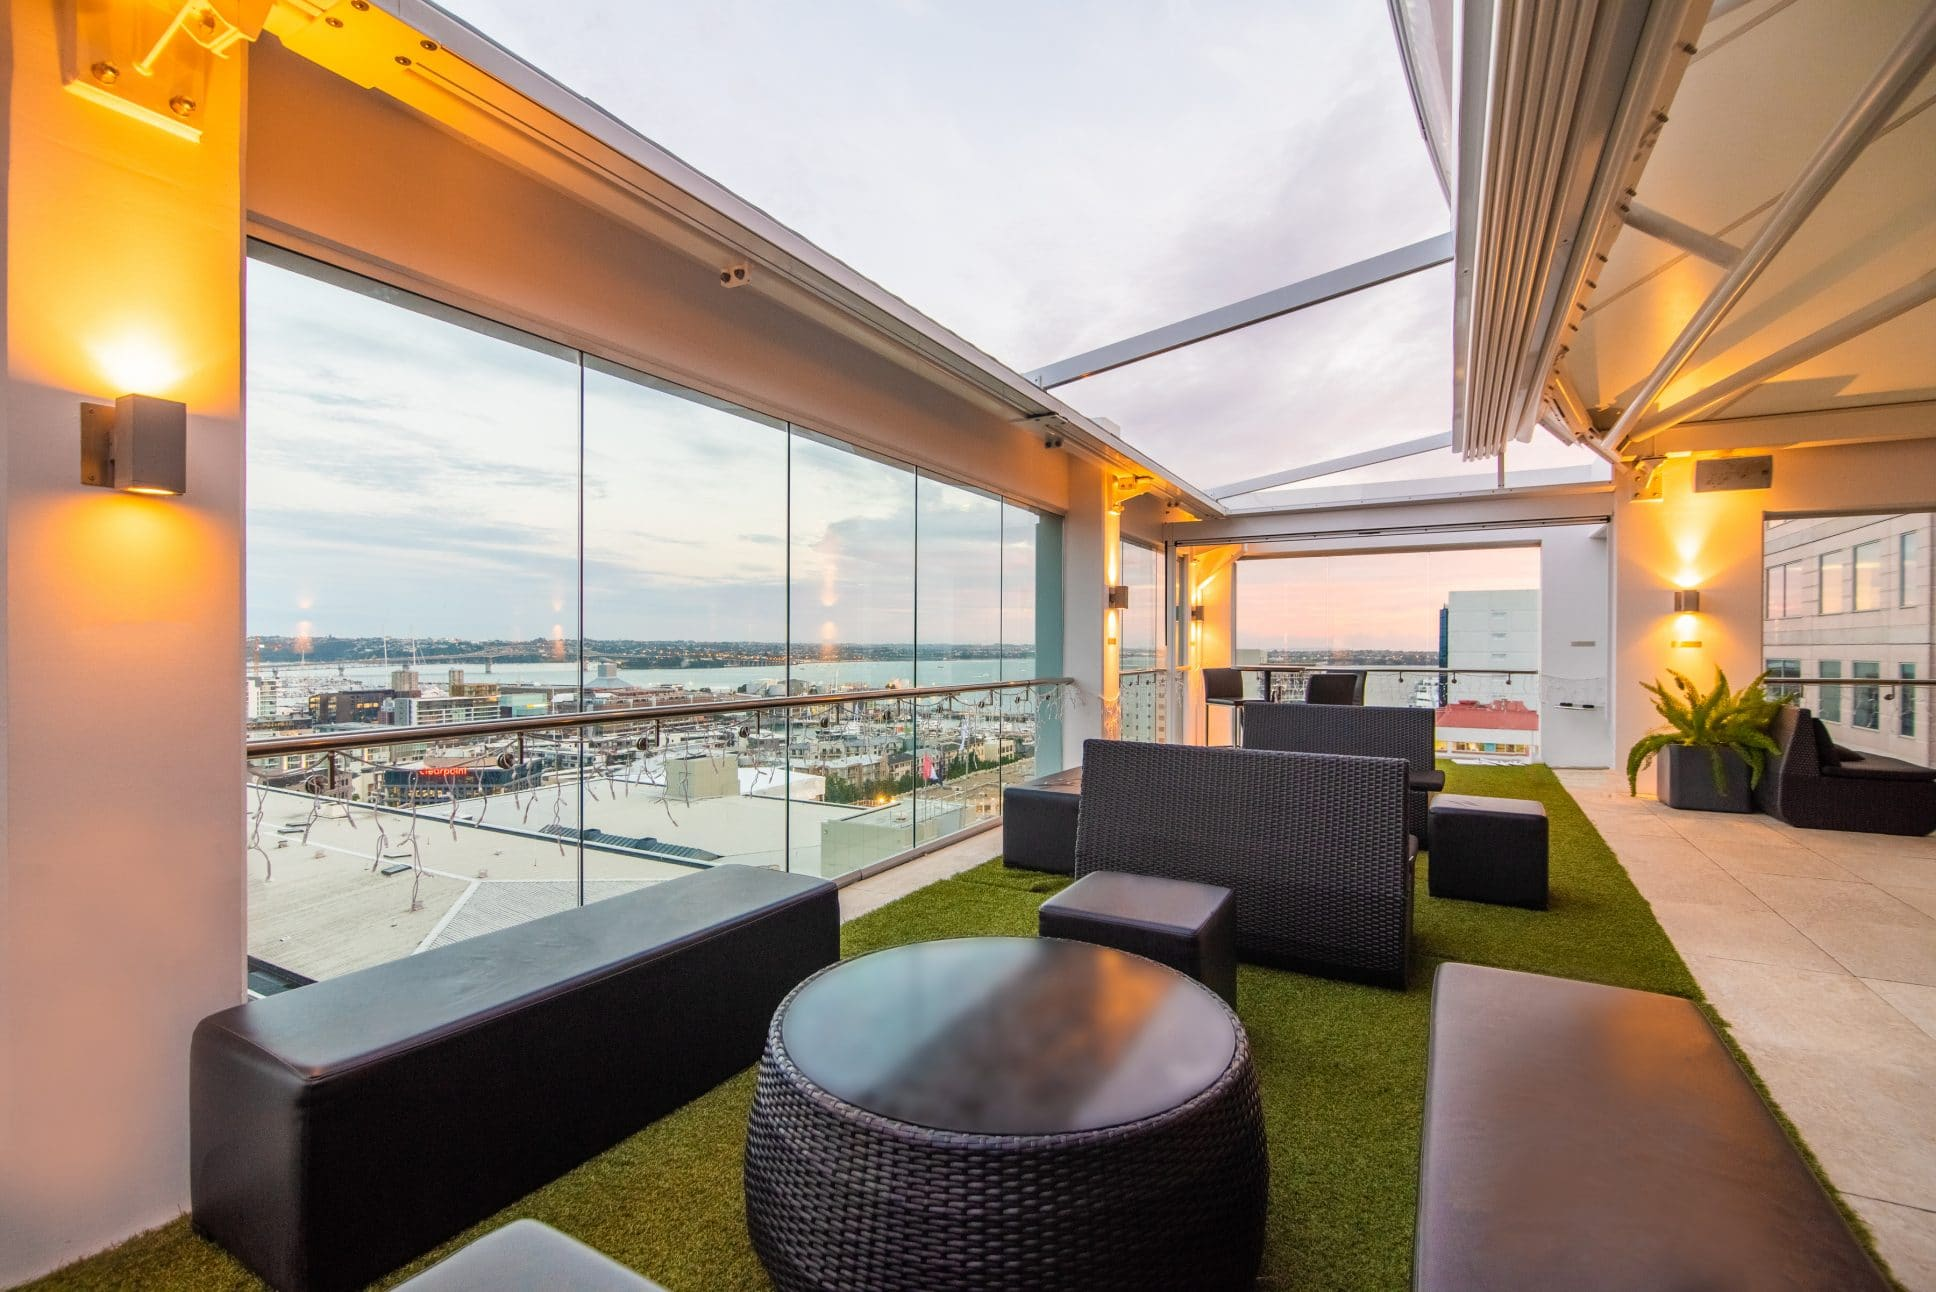 Rydges Auckland event space.